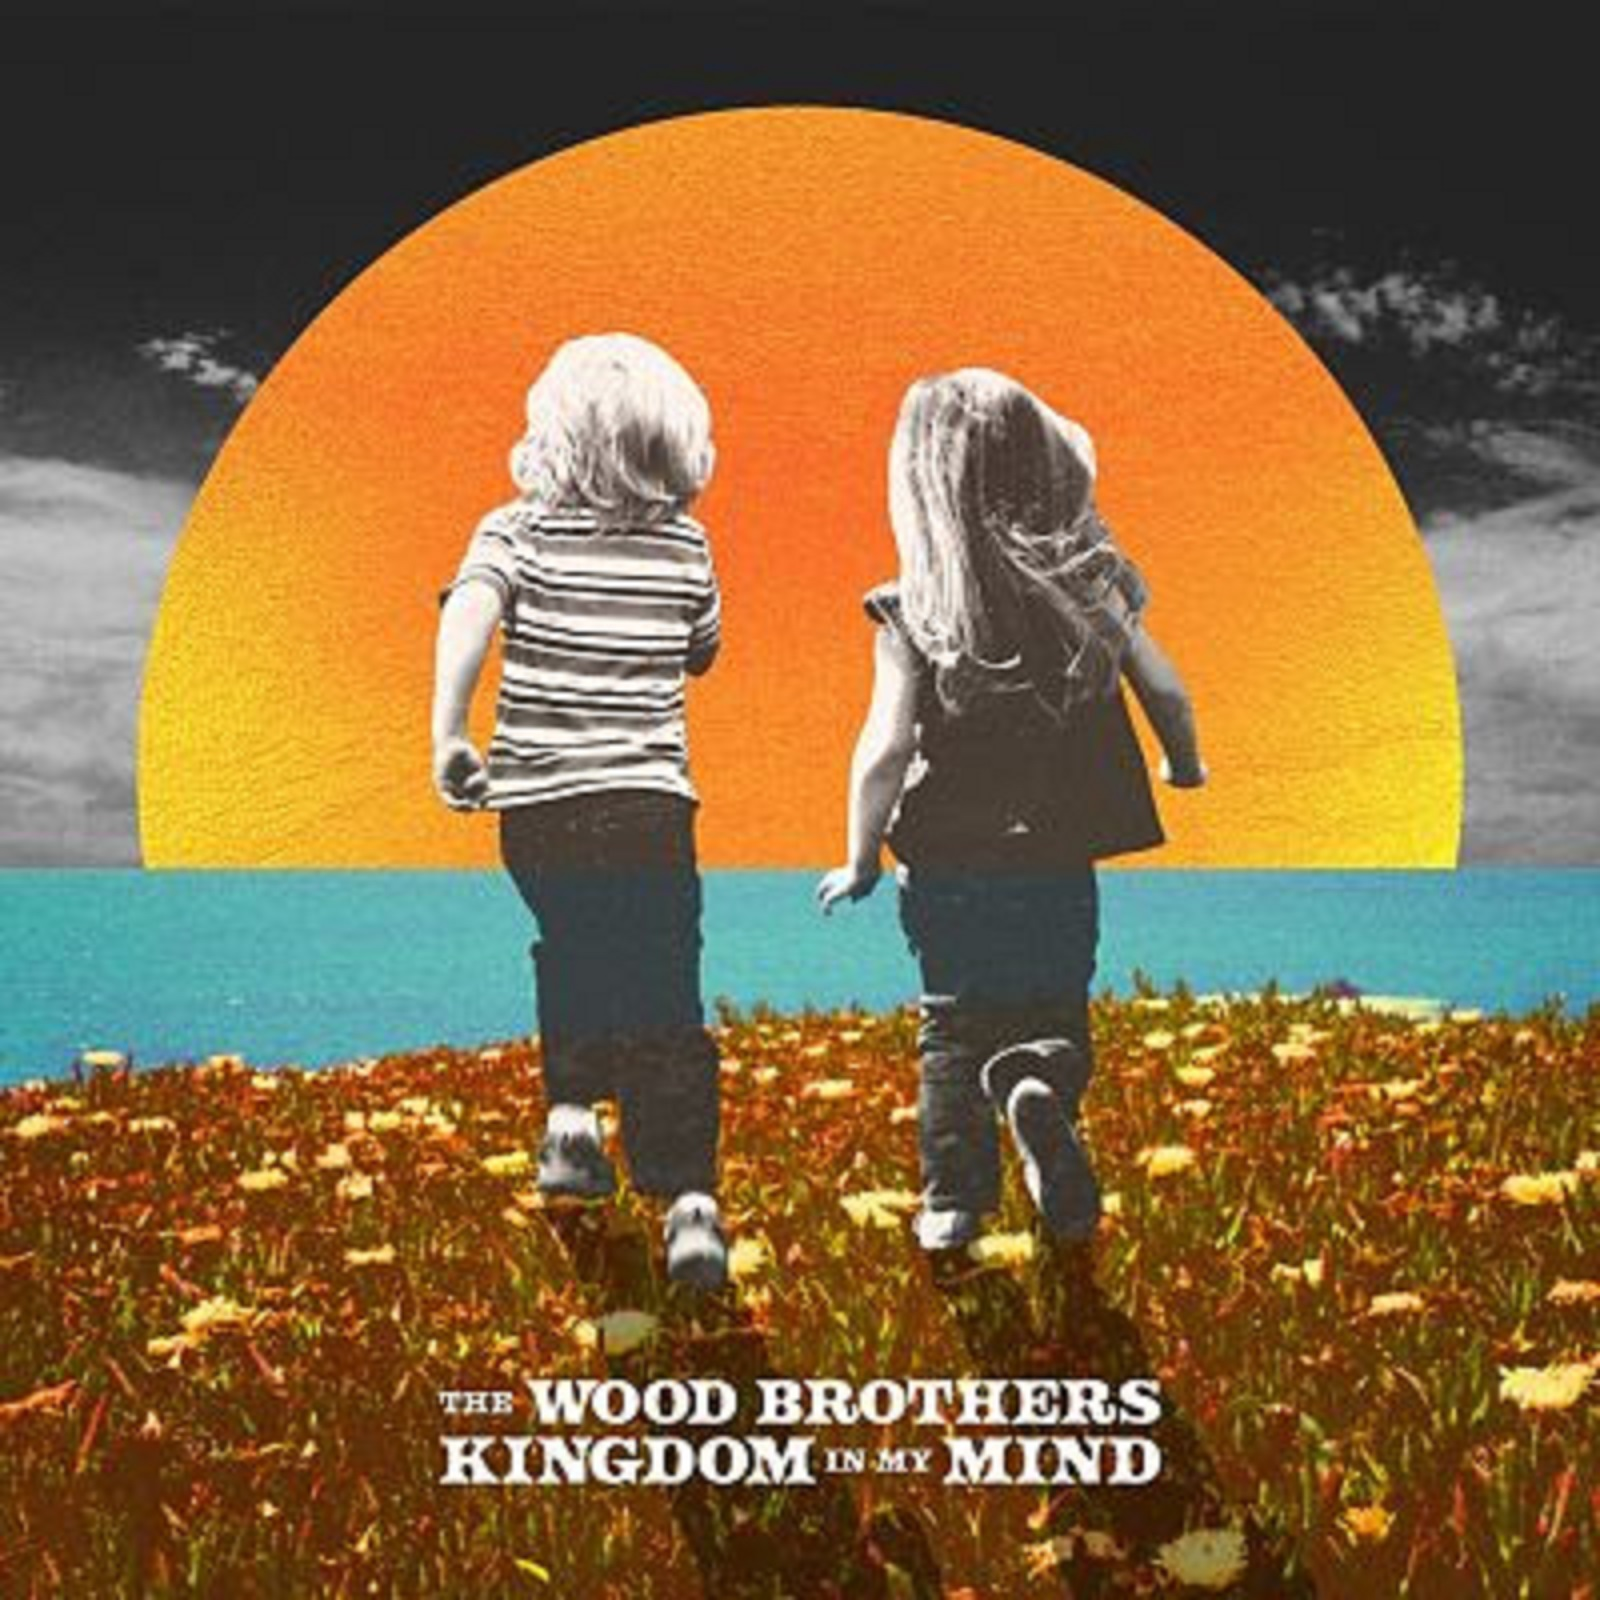 The Wood Brothers Announce 'Kingdom In My Mind' - New Studio Album Out January 24